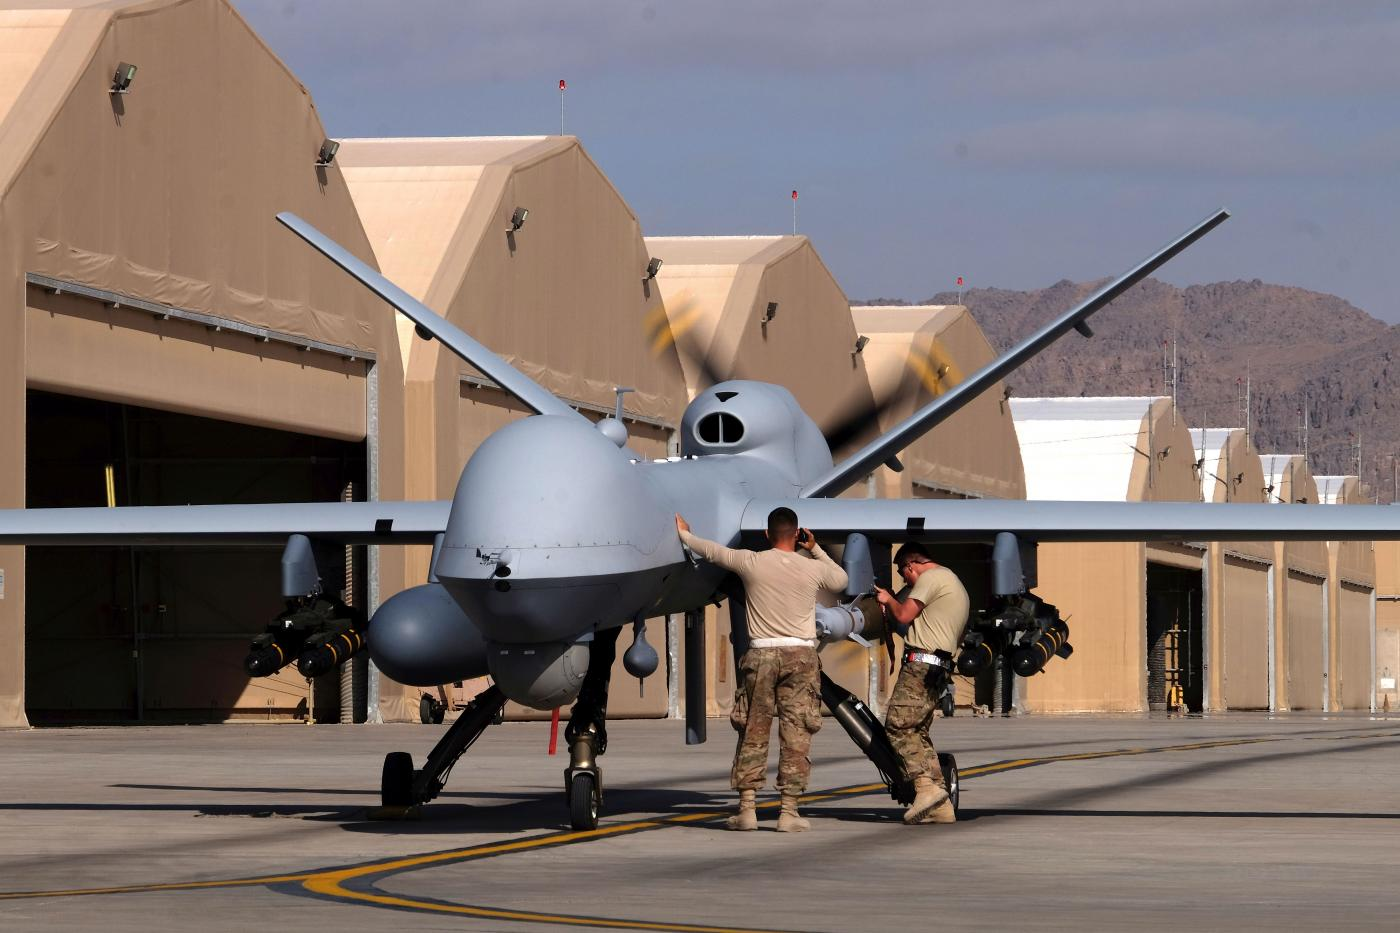 The armed MQ-9B drones will be equipped with maritime radar and could be delivered in 2024.